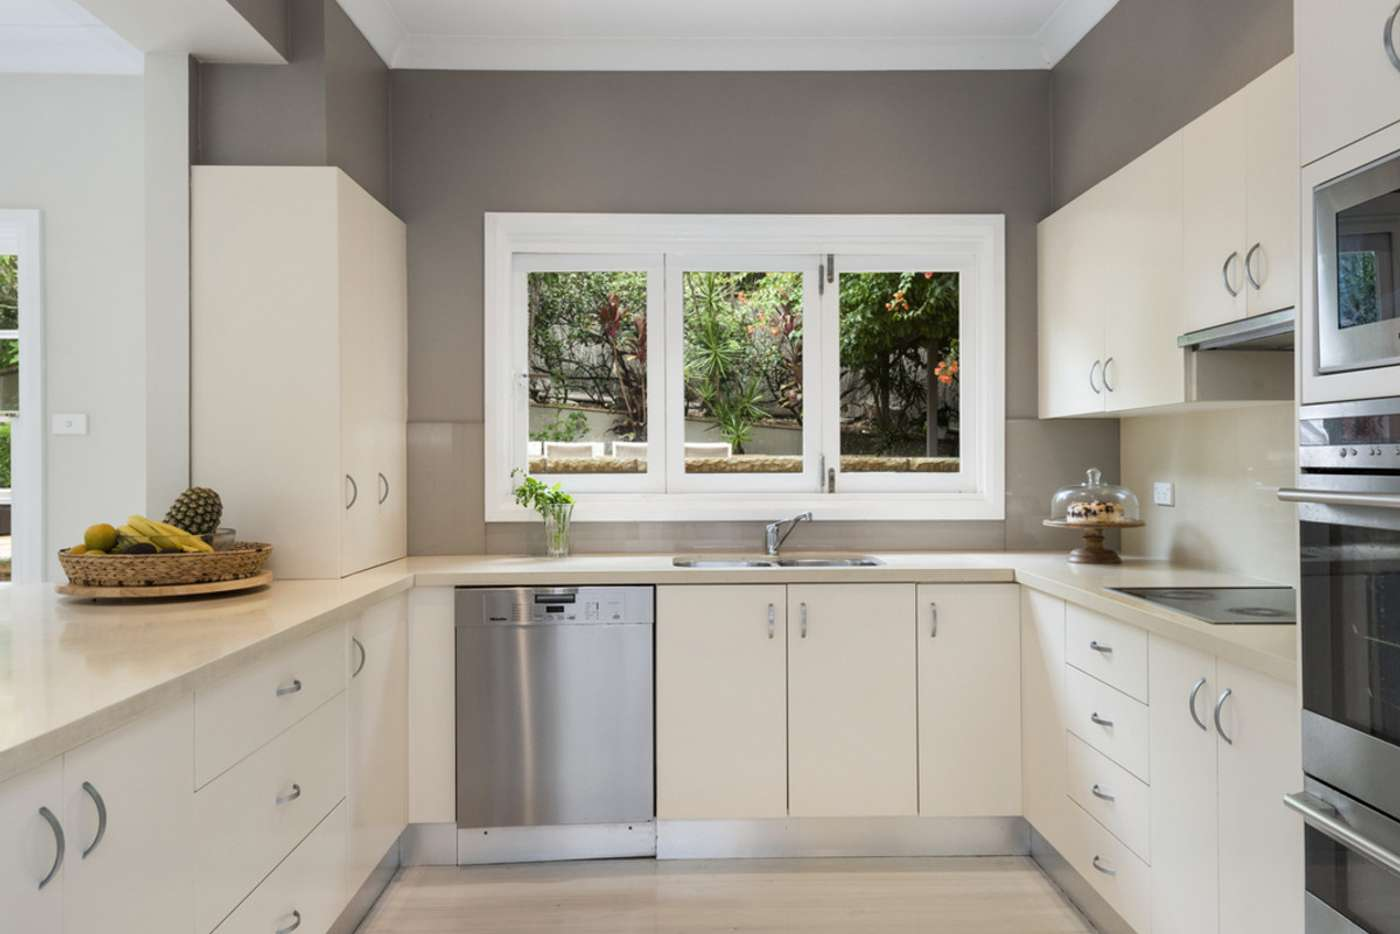 Sixth view of Homely house listing, 15 Crescent Road, Mona Vale NSW 2103